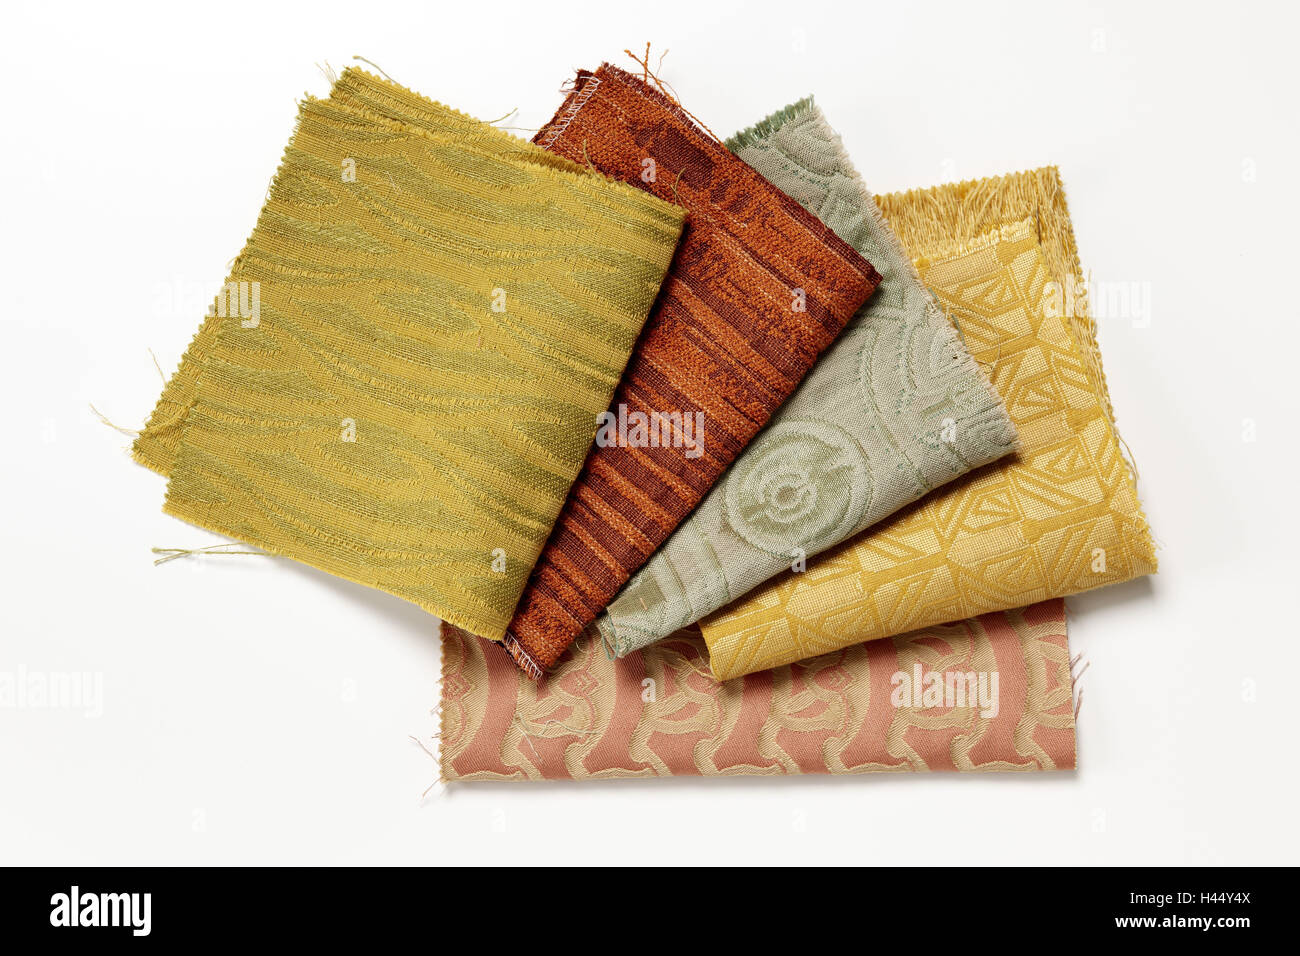 Textiles, different, - Stock Image